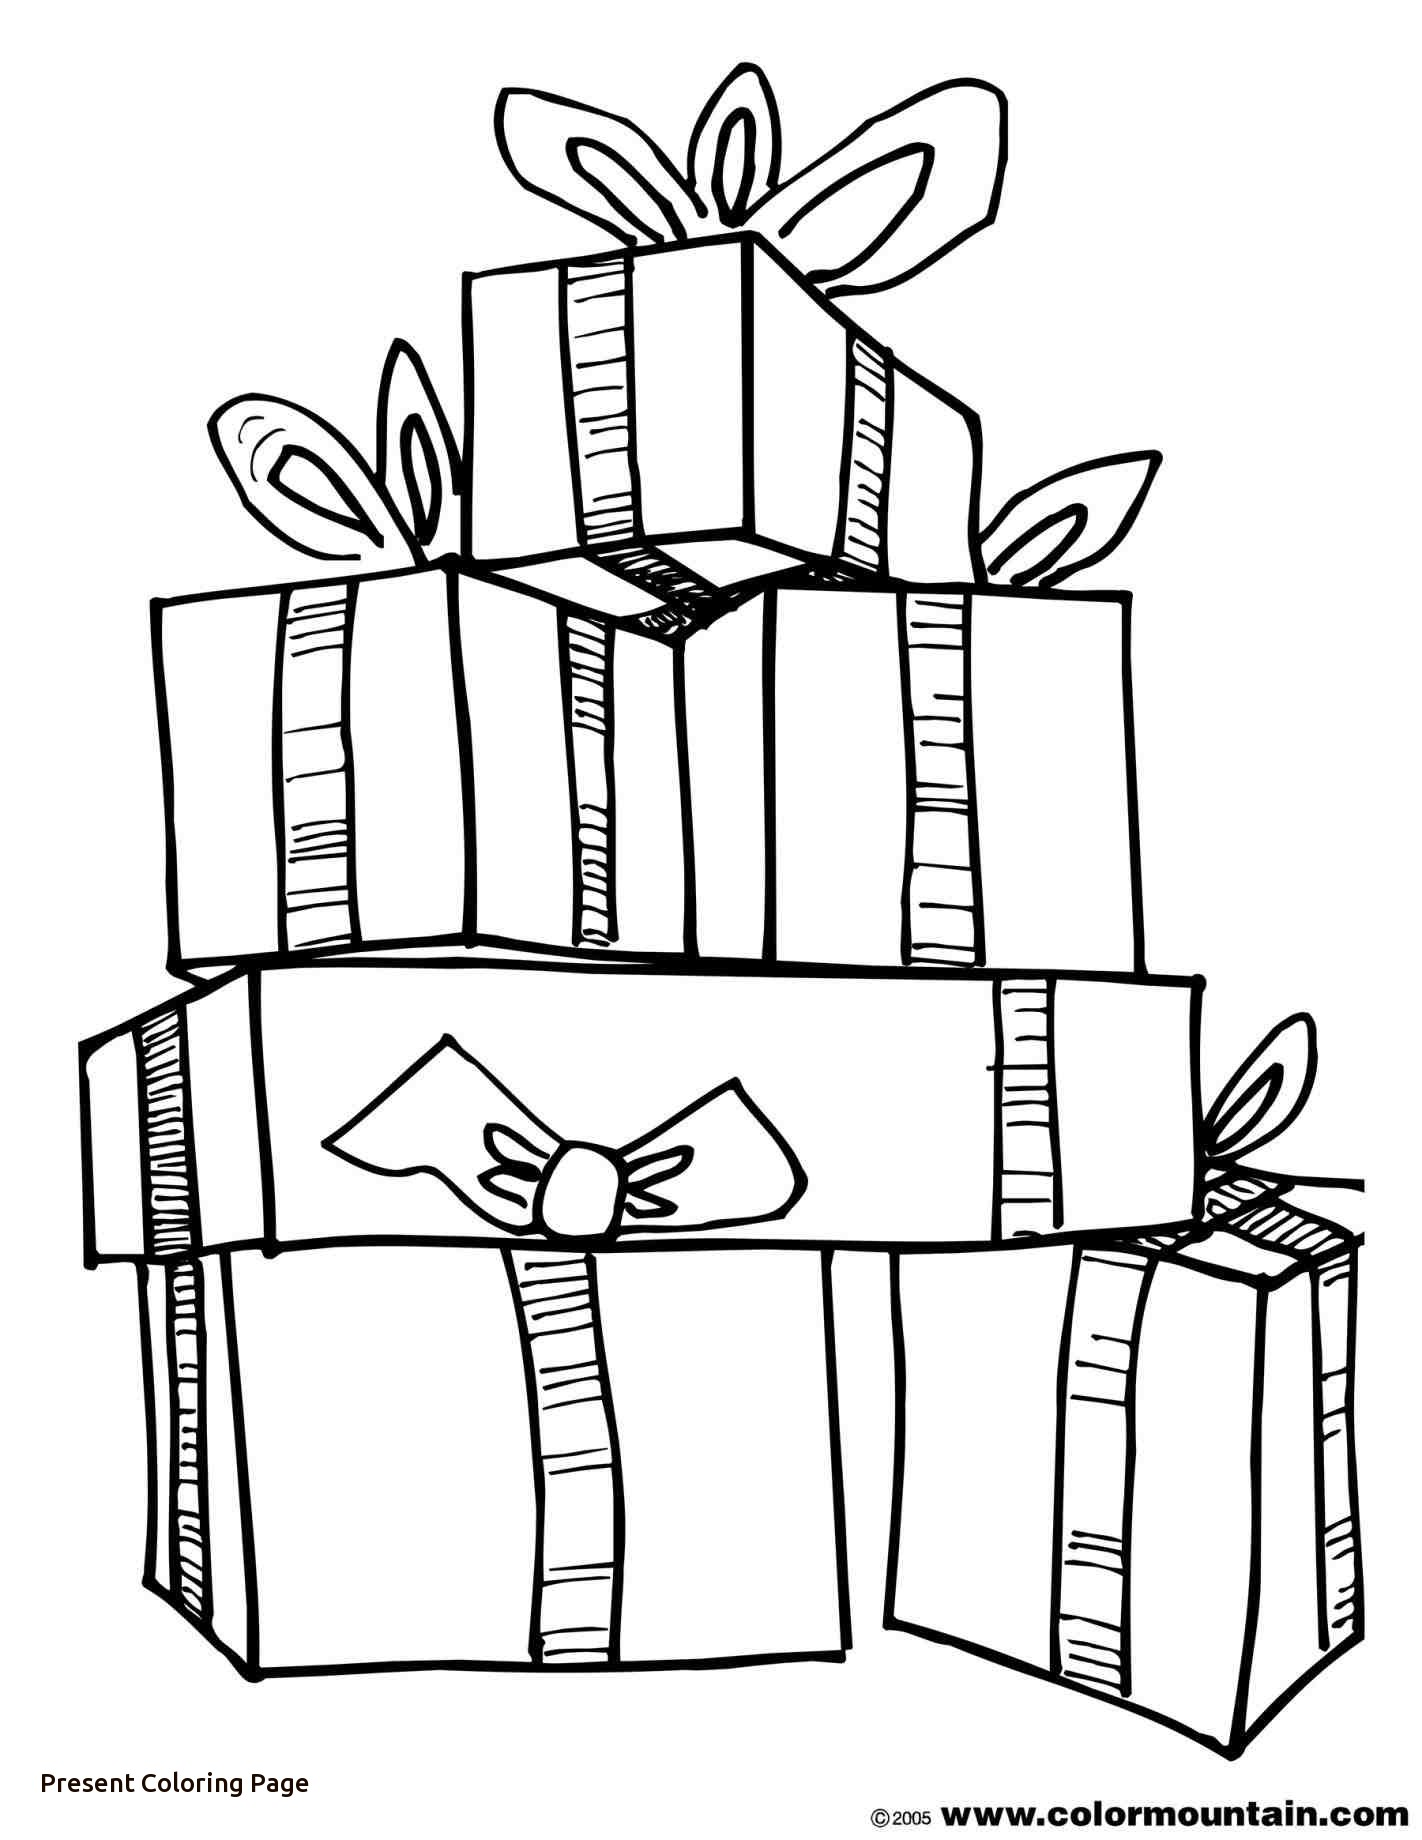 Free Printable Christmas Stocking Coloring Pages At